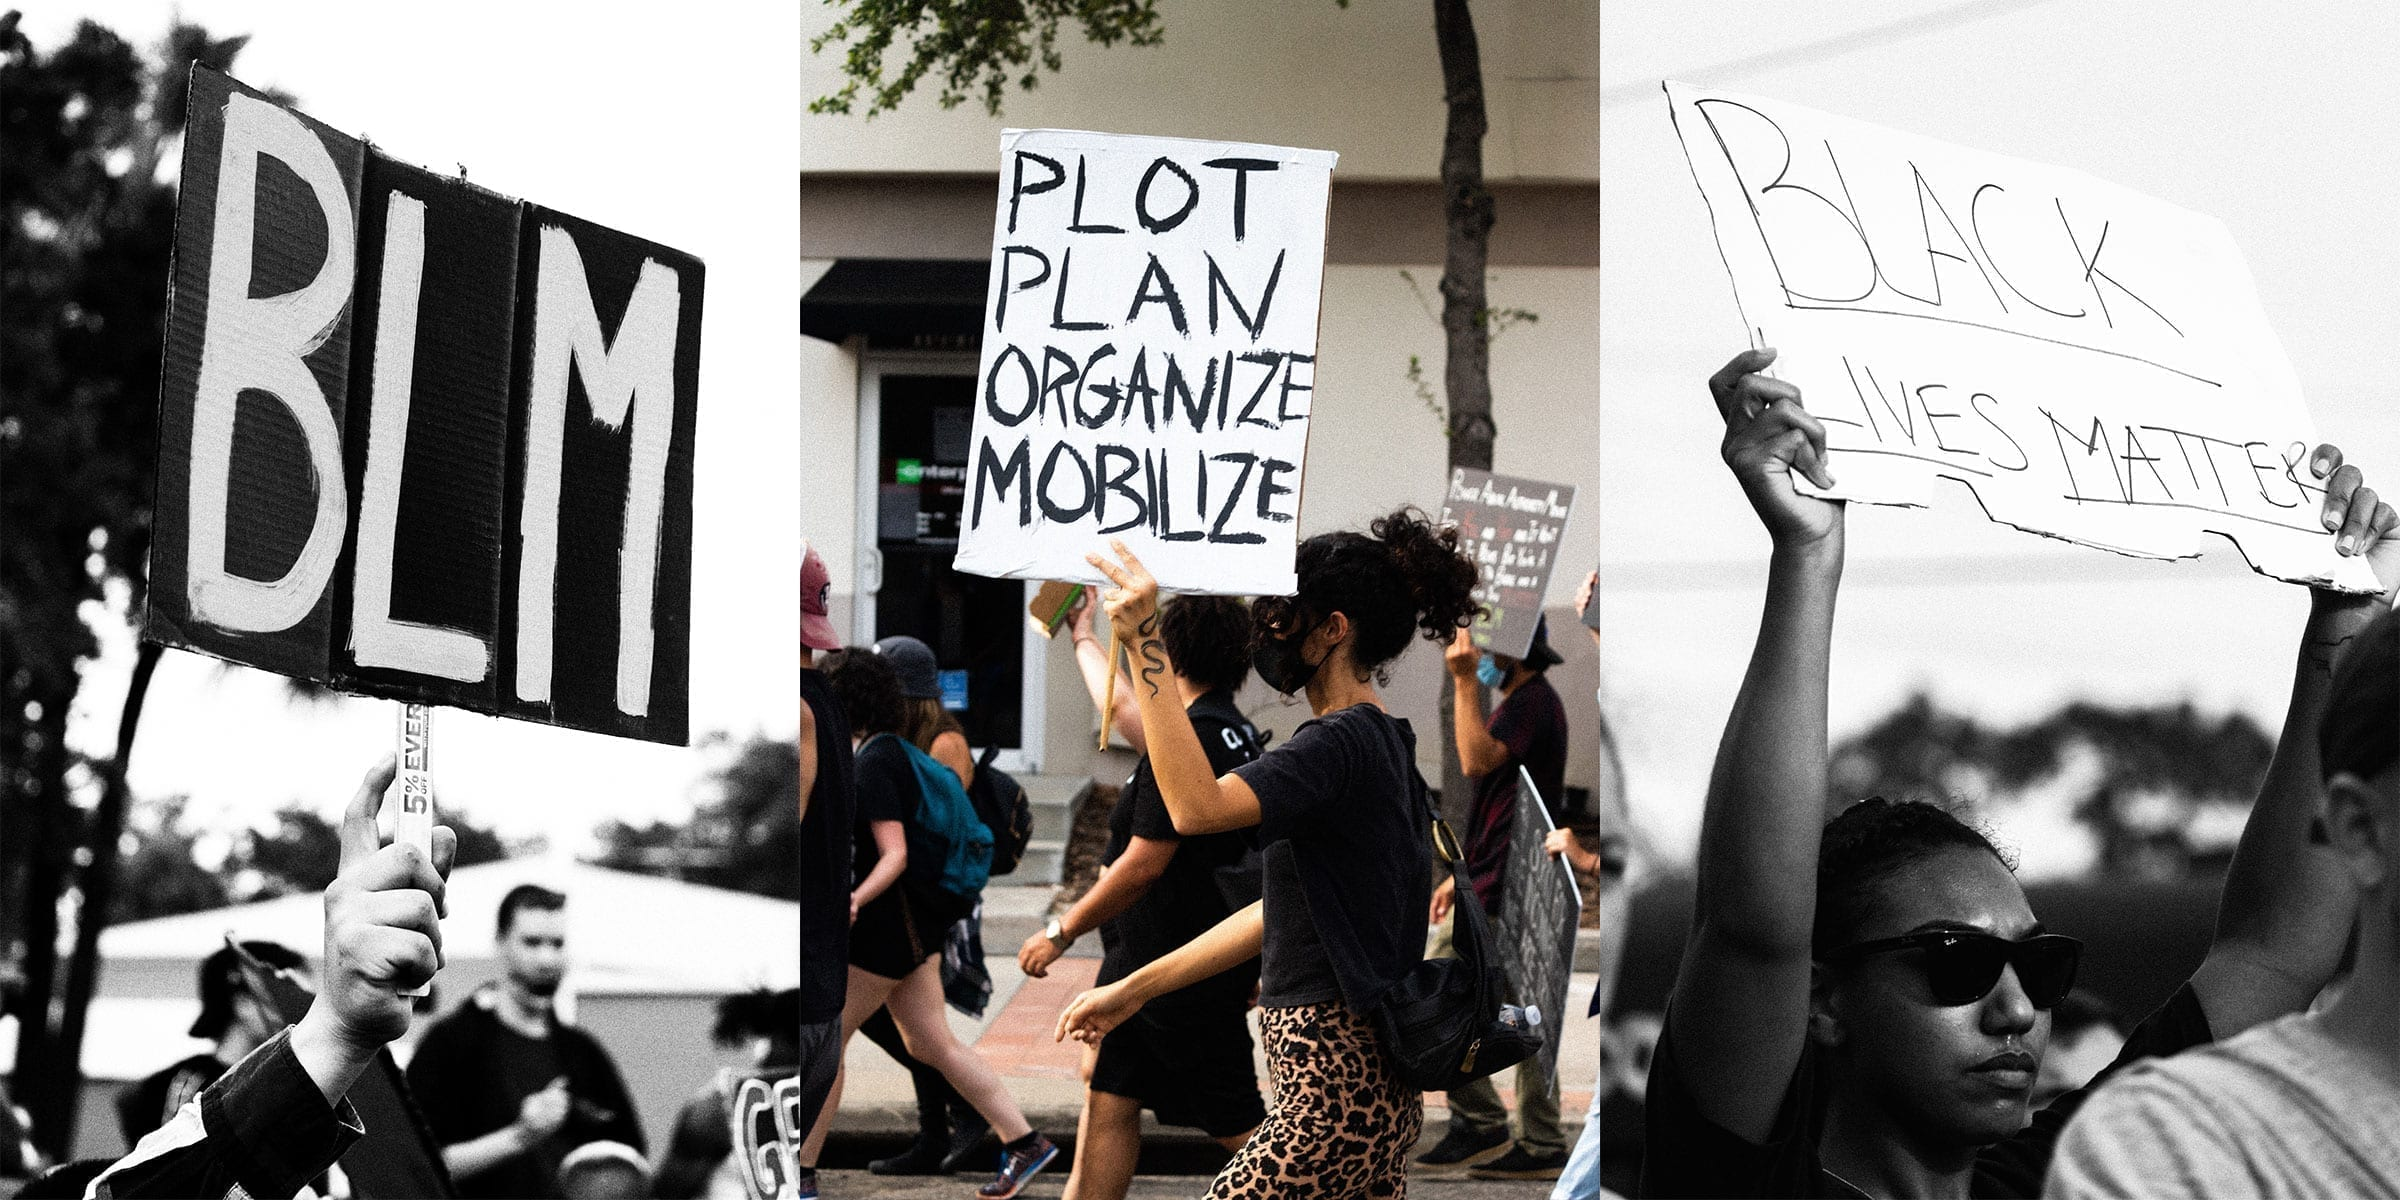 """A collage of three photos, the first in black and white showing a person holding a sign reading """"BLM"""" at a protest. The second showing a women holding a sign reading """"Plot Plan Mobilize Organize"""" at a protest. The third, in black and white, showing a women holding a sign reading """"Black Lives Matter"""" at a protest."""